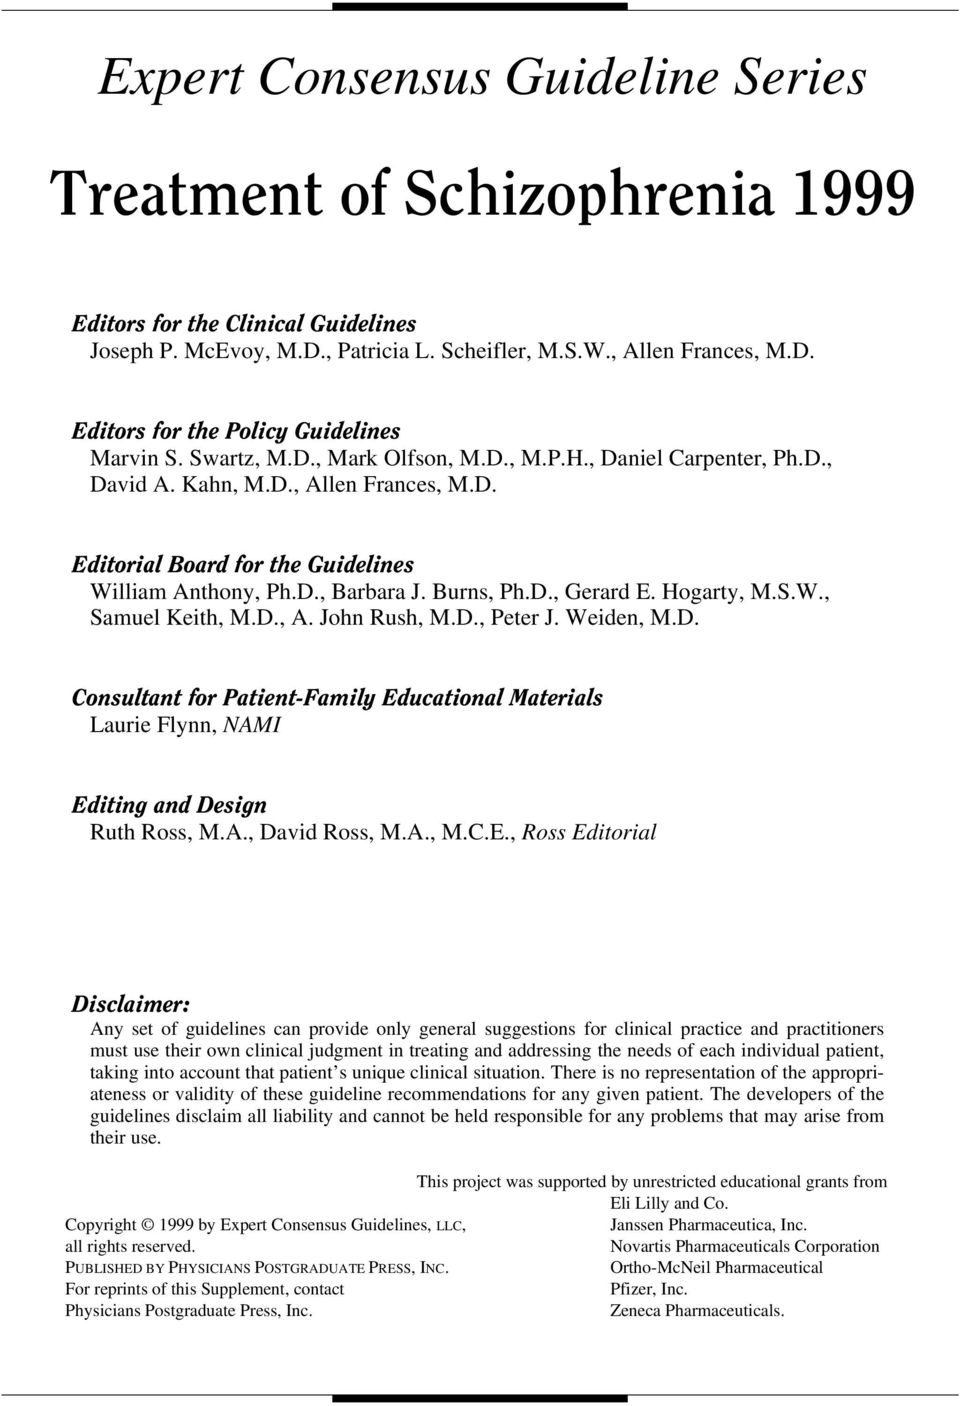 Hogarty, M.S.W., Samuel Keith, M.D., A. John Rush, M.D., Peter J. Weiden, M.D. Consultant for Patient-Family Educational Materials Laurie Flynn, NAMI Editing and Design Ruth Ross, M.A., David Ross, M.